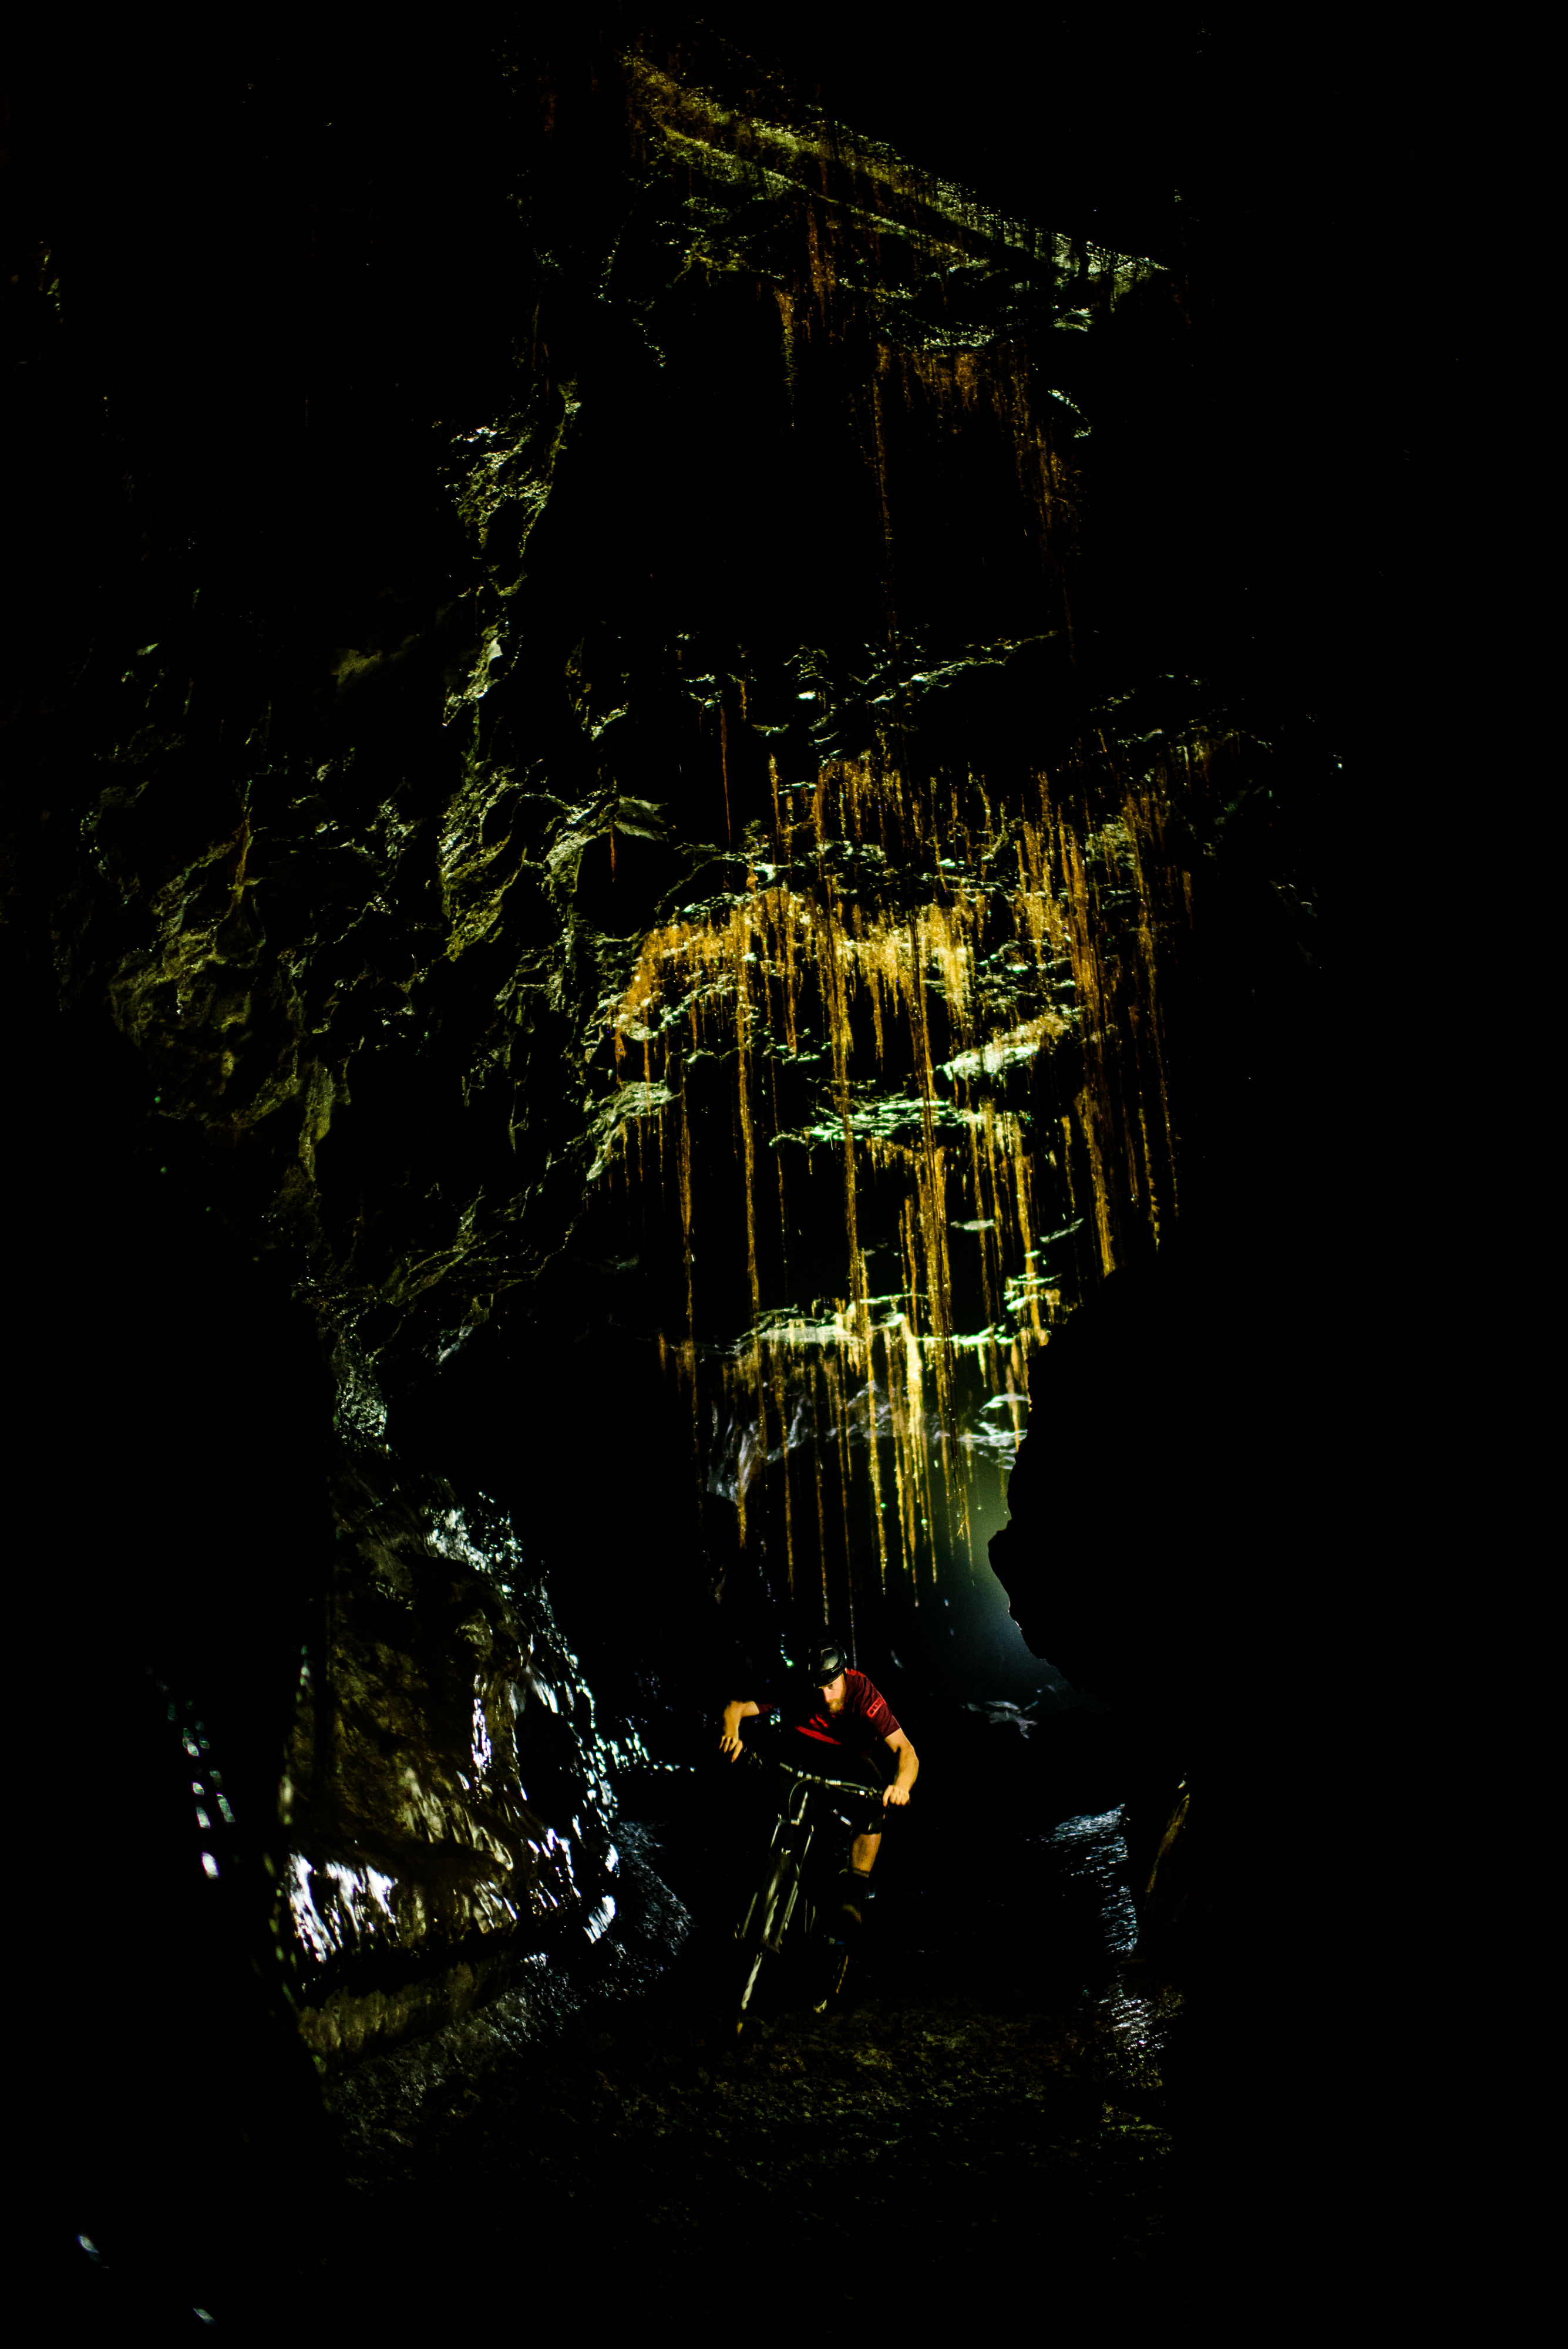 deep in a cave